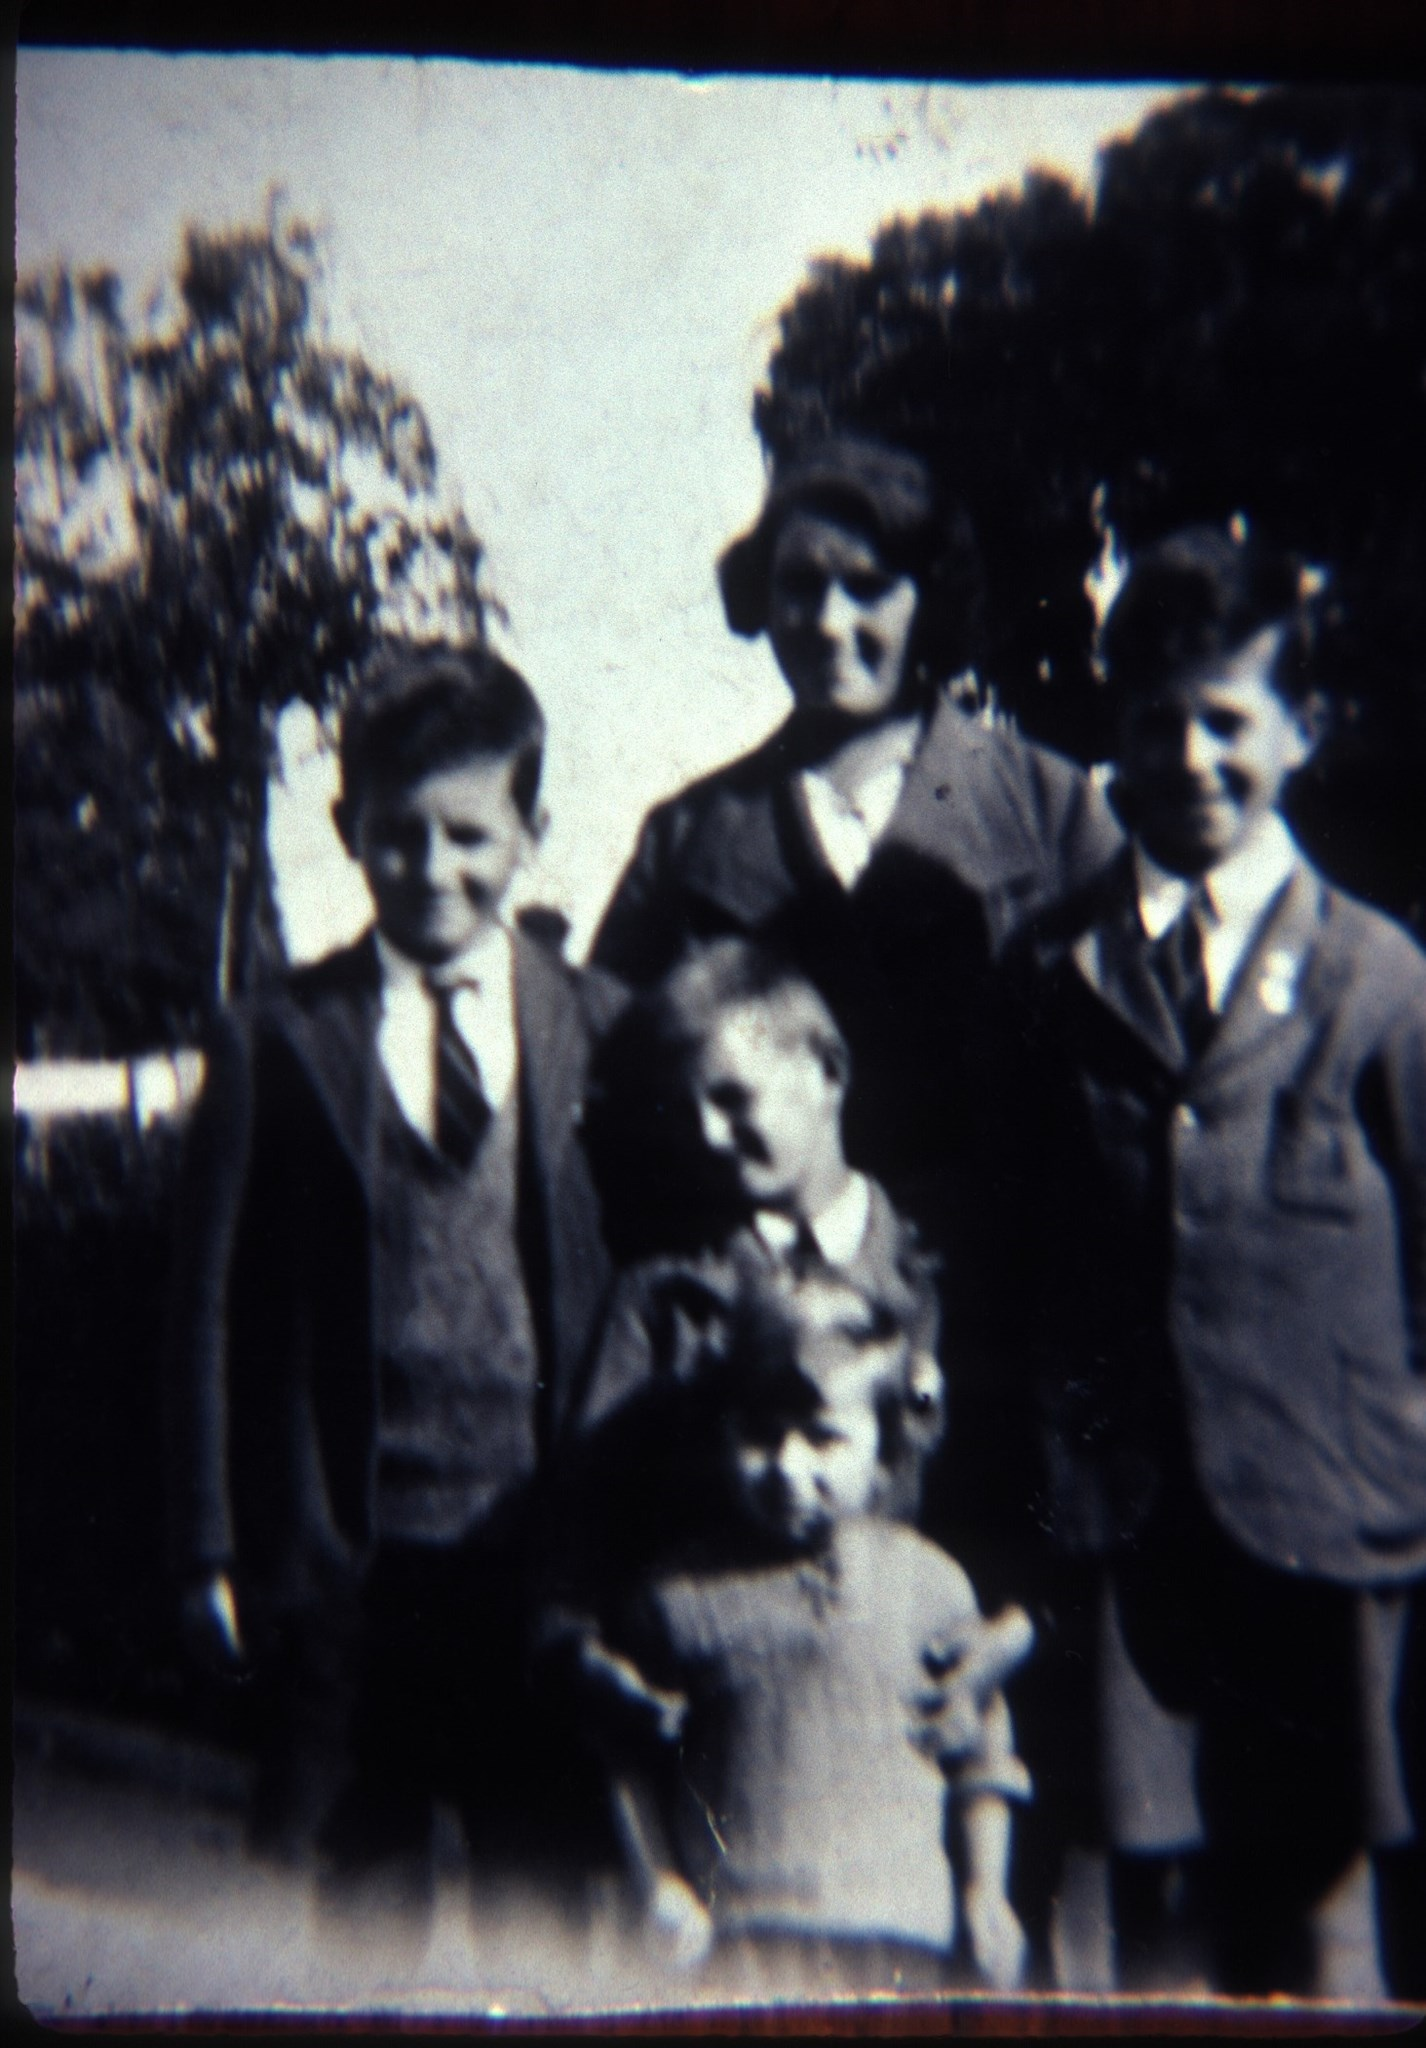 Rose, Ron, Peter, Jim and Ray